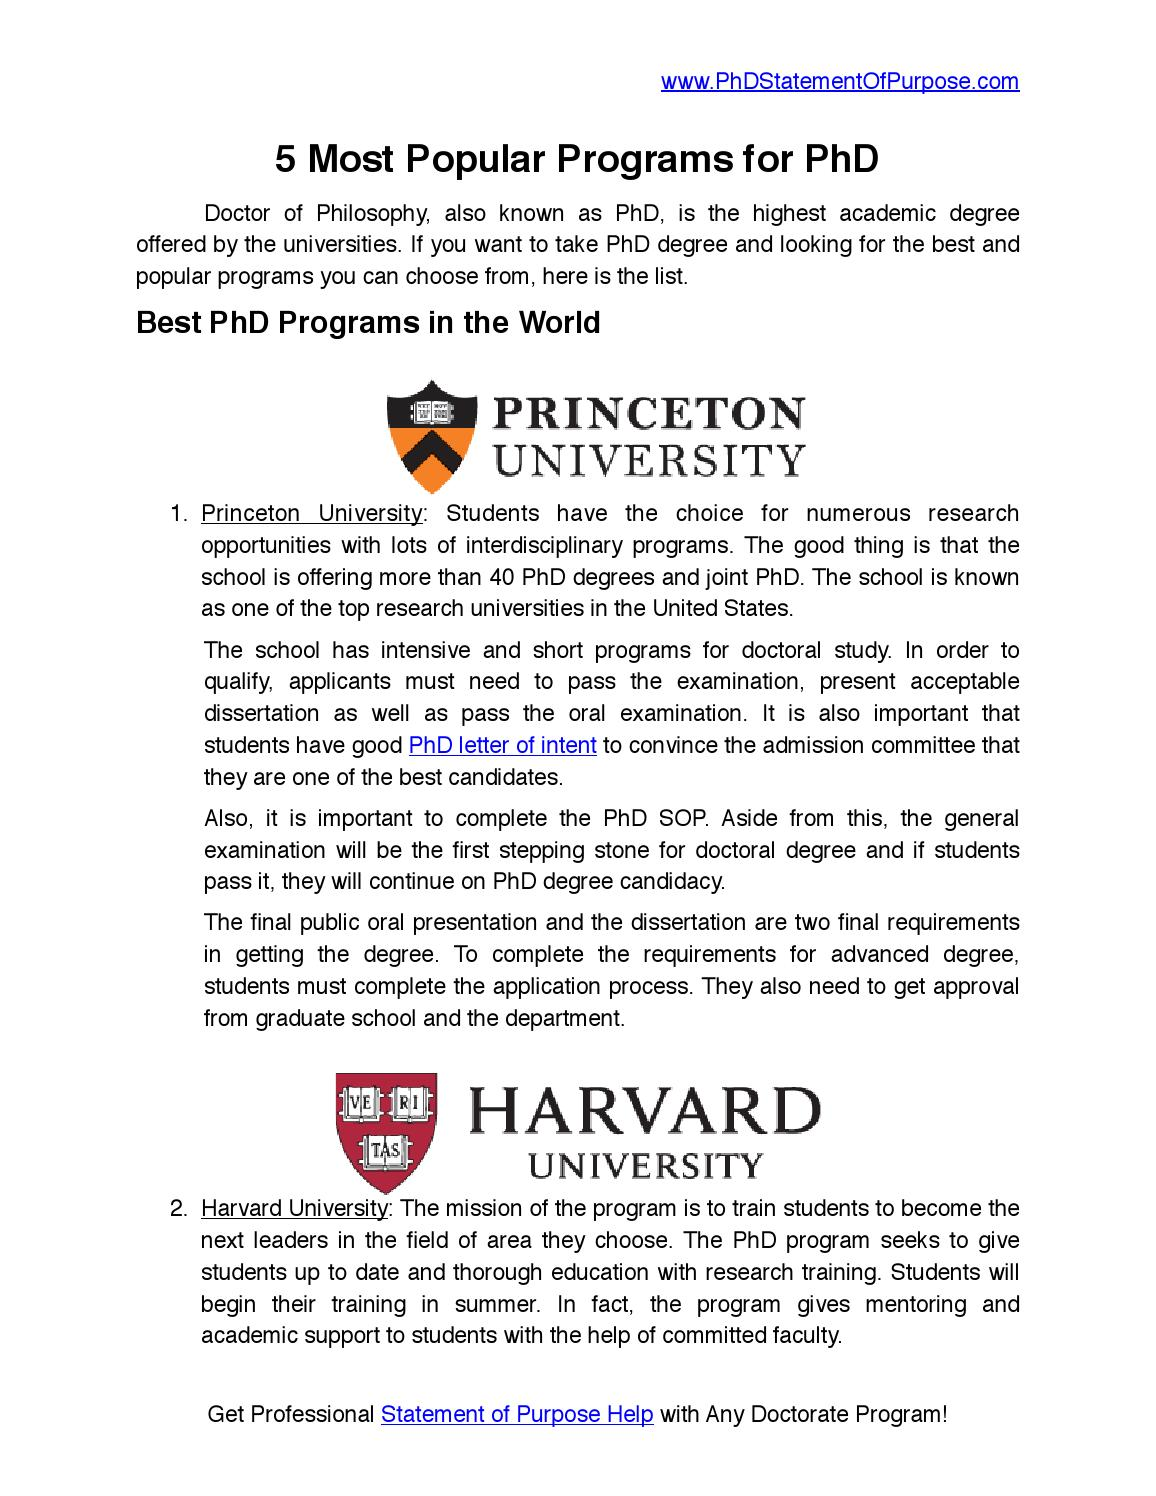 princeton university edu doctorate phd thesis